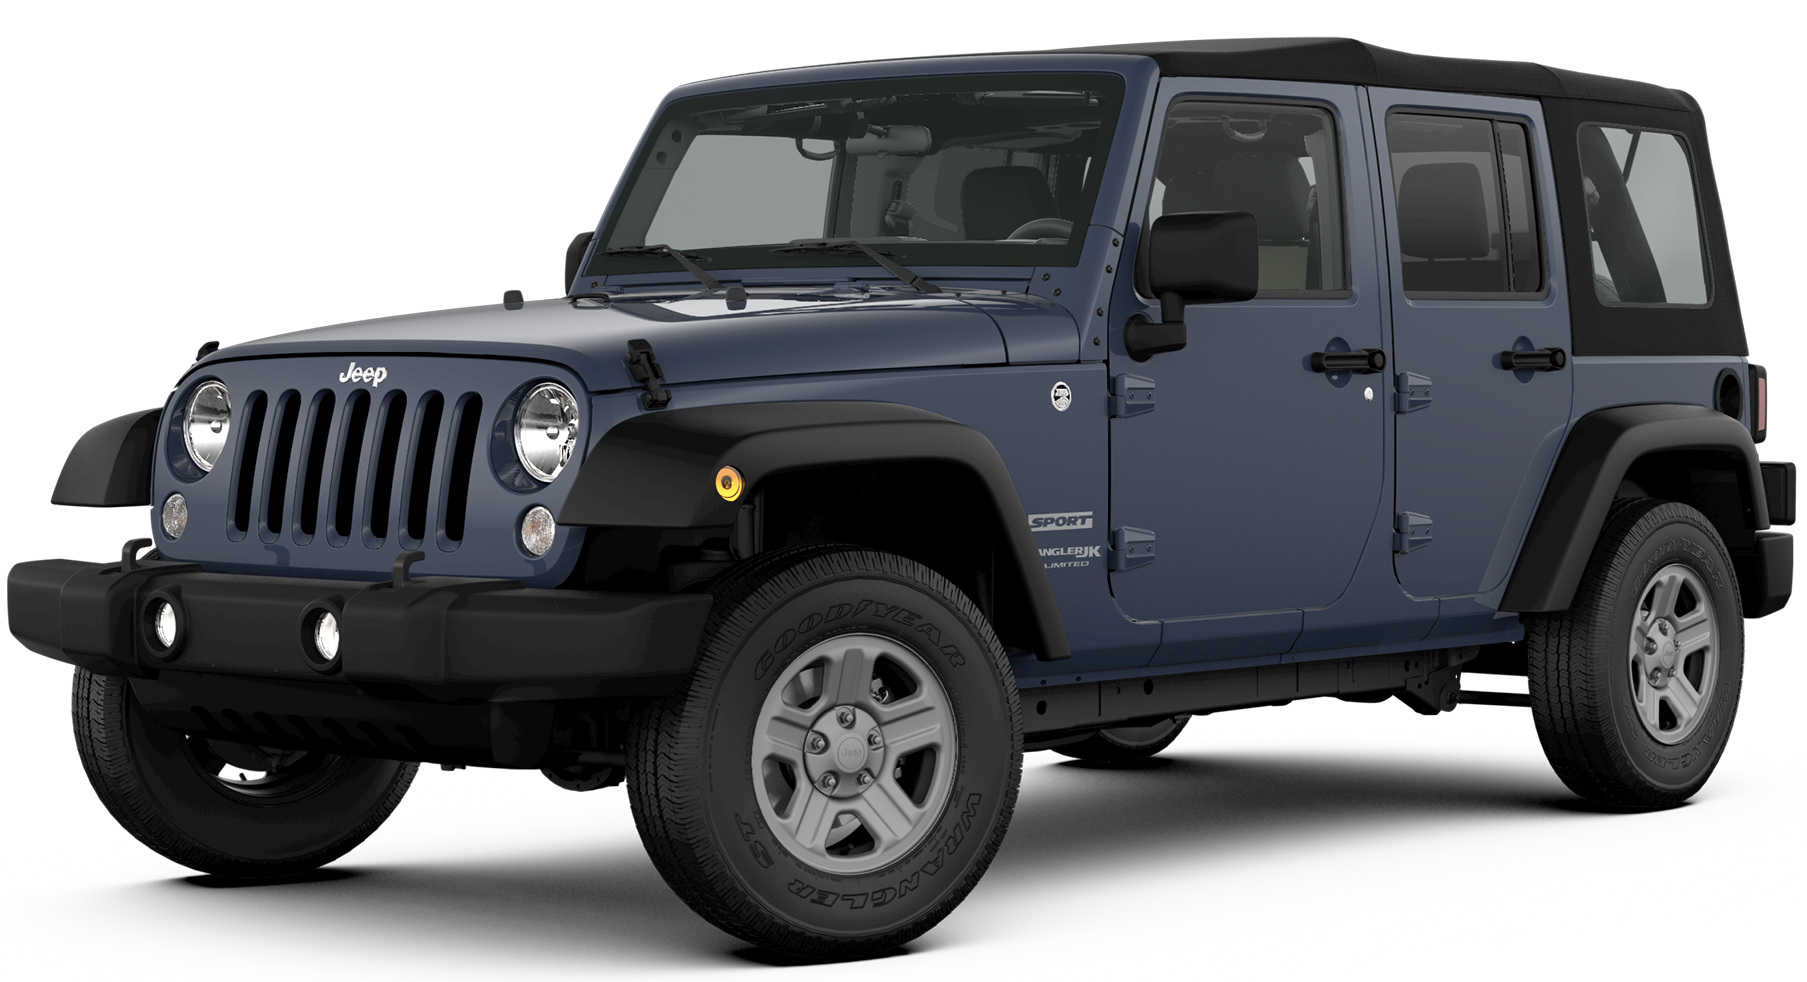 Jeep Dealership San Diego >> Jeep Dealership San Diego Ca Cherokee Wrangler Compass Renegade